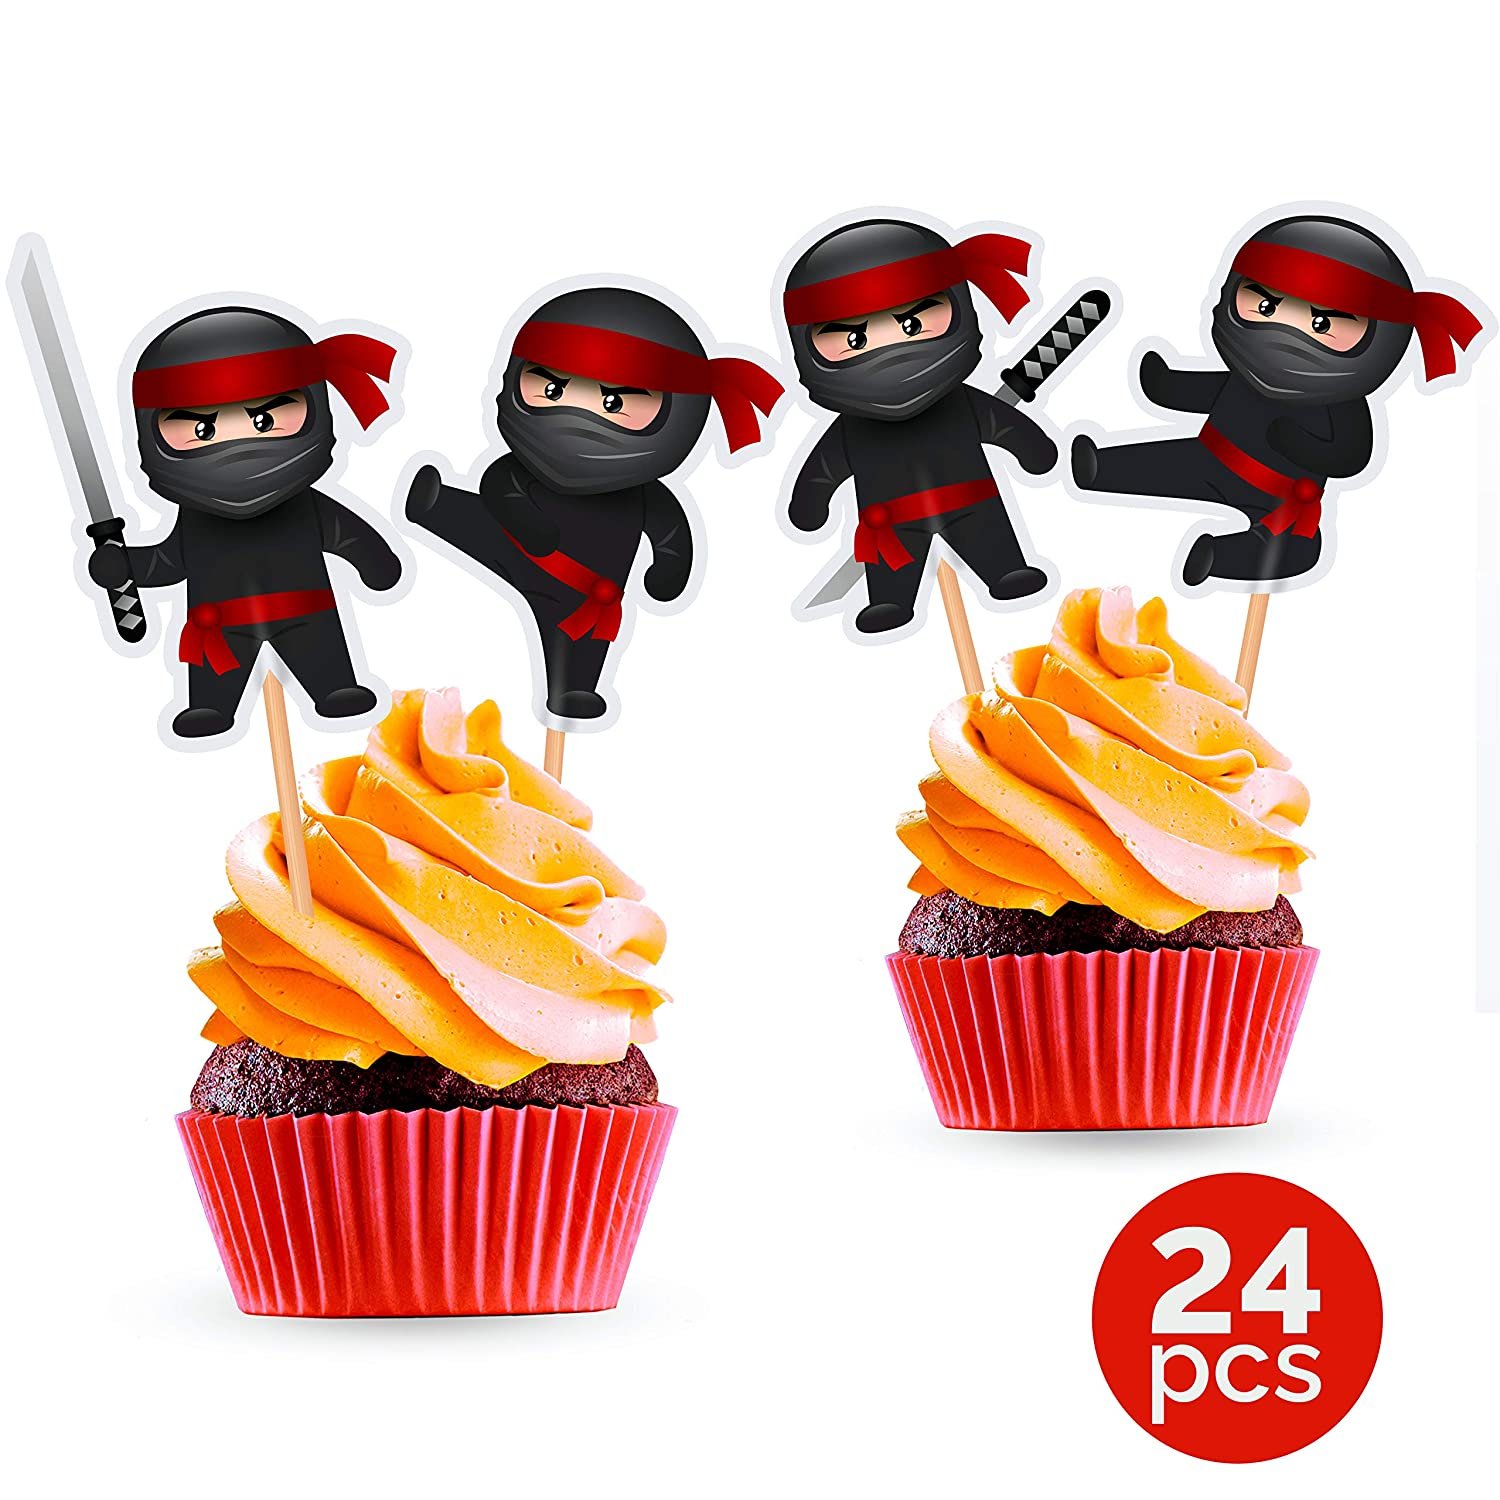 Ninja Cupcake Toppers - Ninja Birthday Party Decorations Supplies Karate Themed- 24 PCS